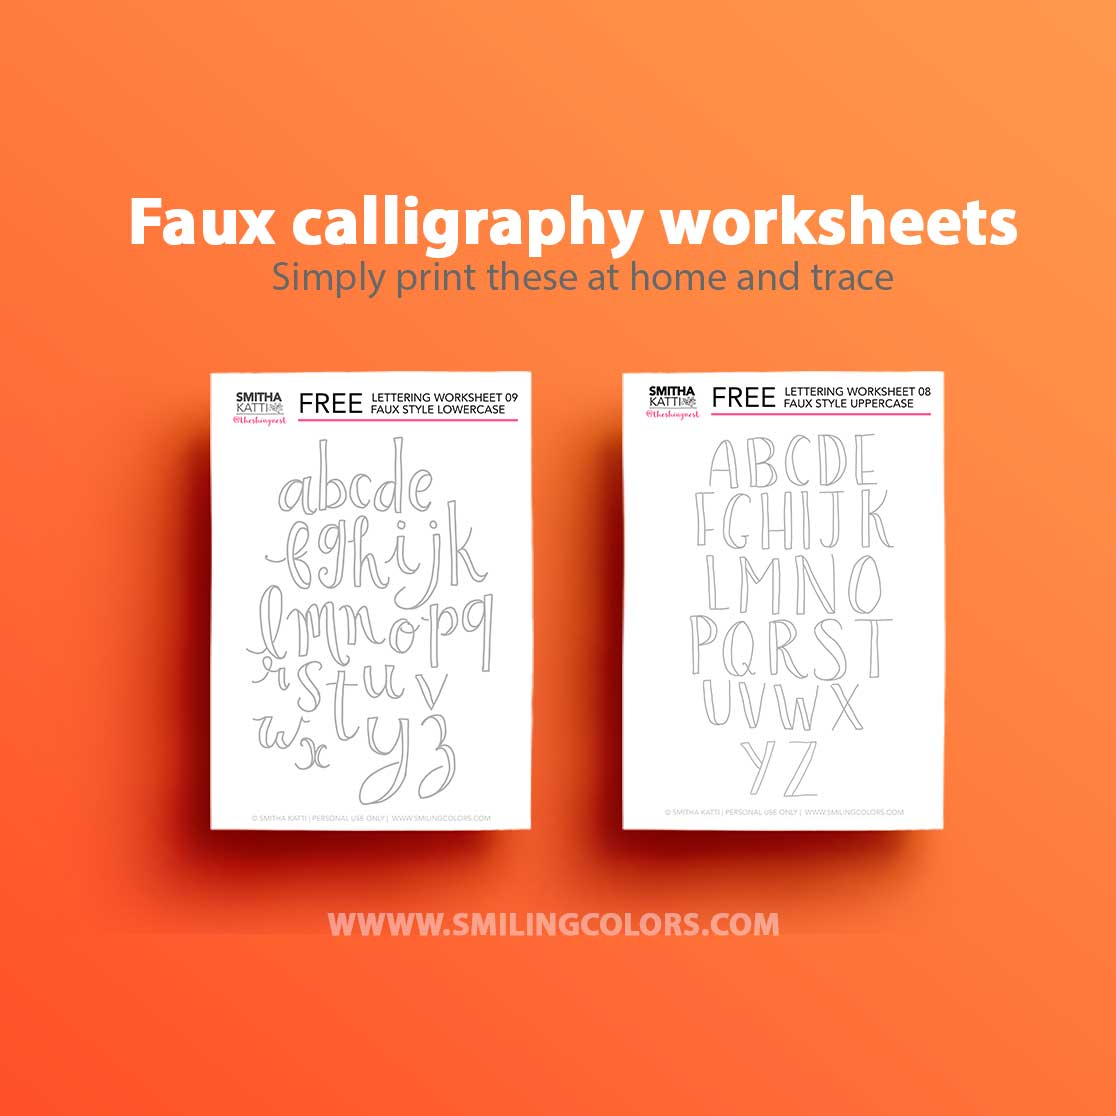 image about Free Calligraphy Worksheets Printable referred to as Lettering worksheets: 9 Free of charge printable train sheets toward hint